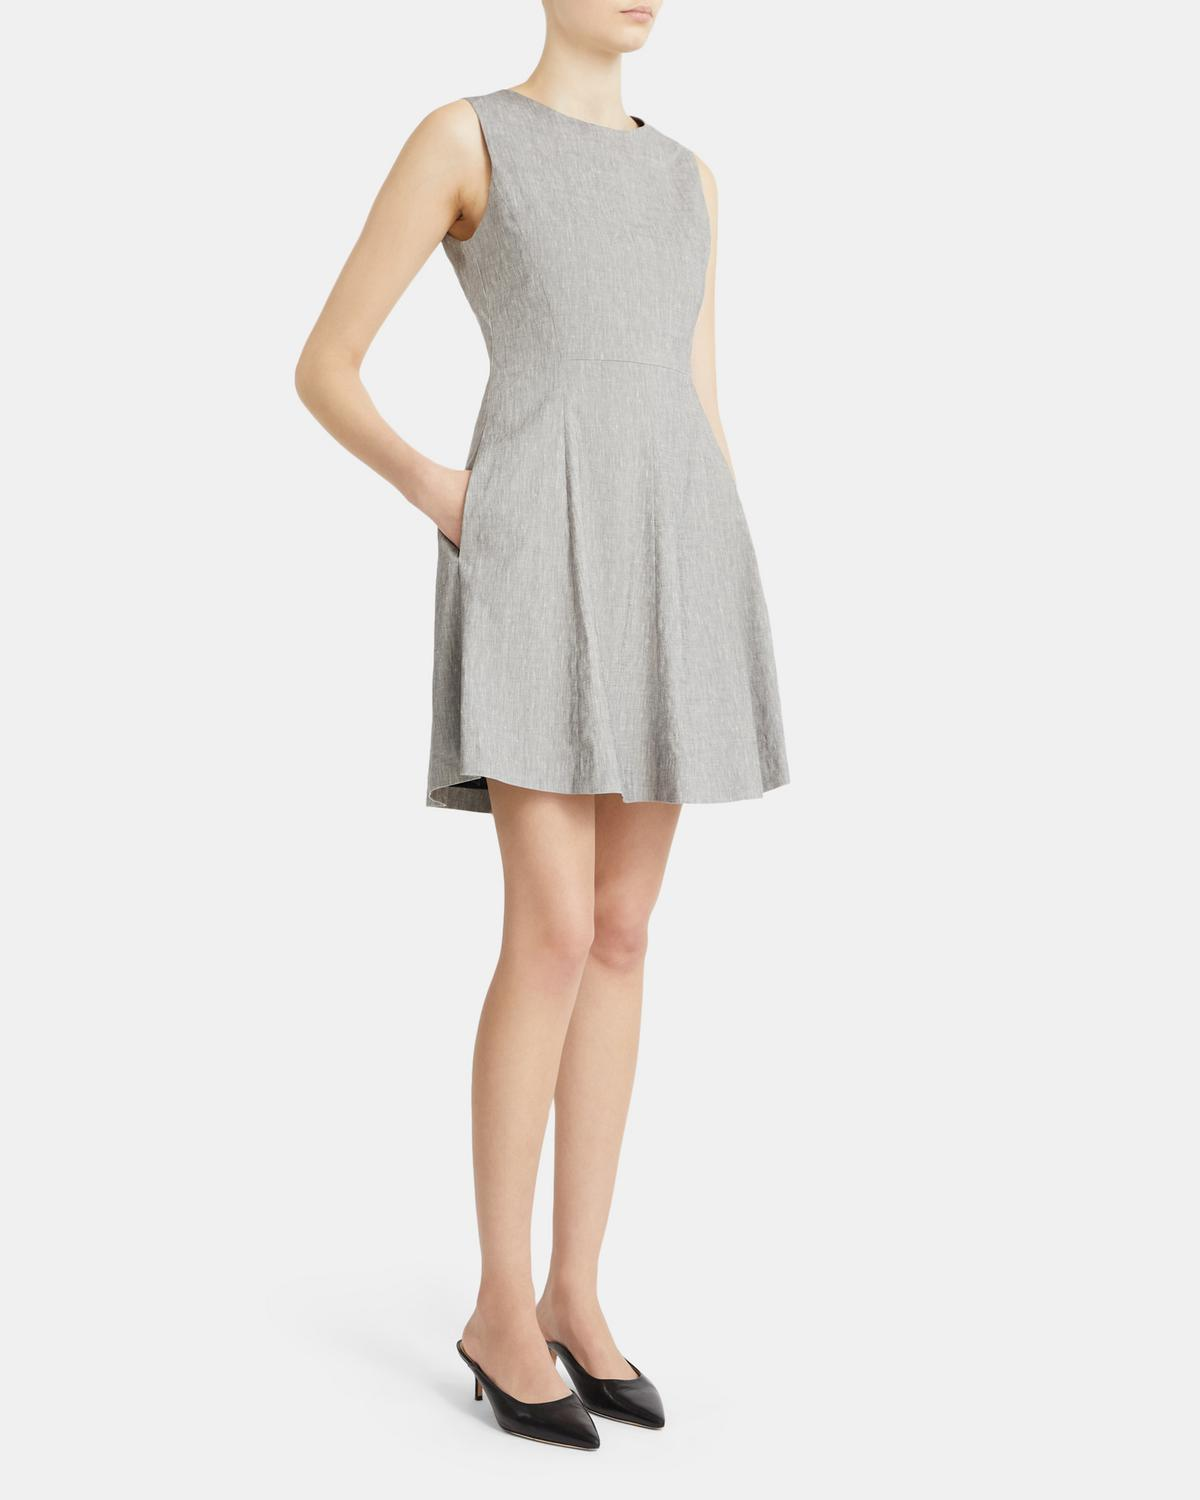 Albita Flare Dress in Mélange Stretch Linen